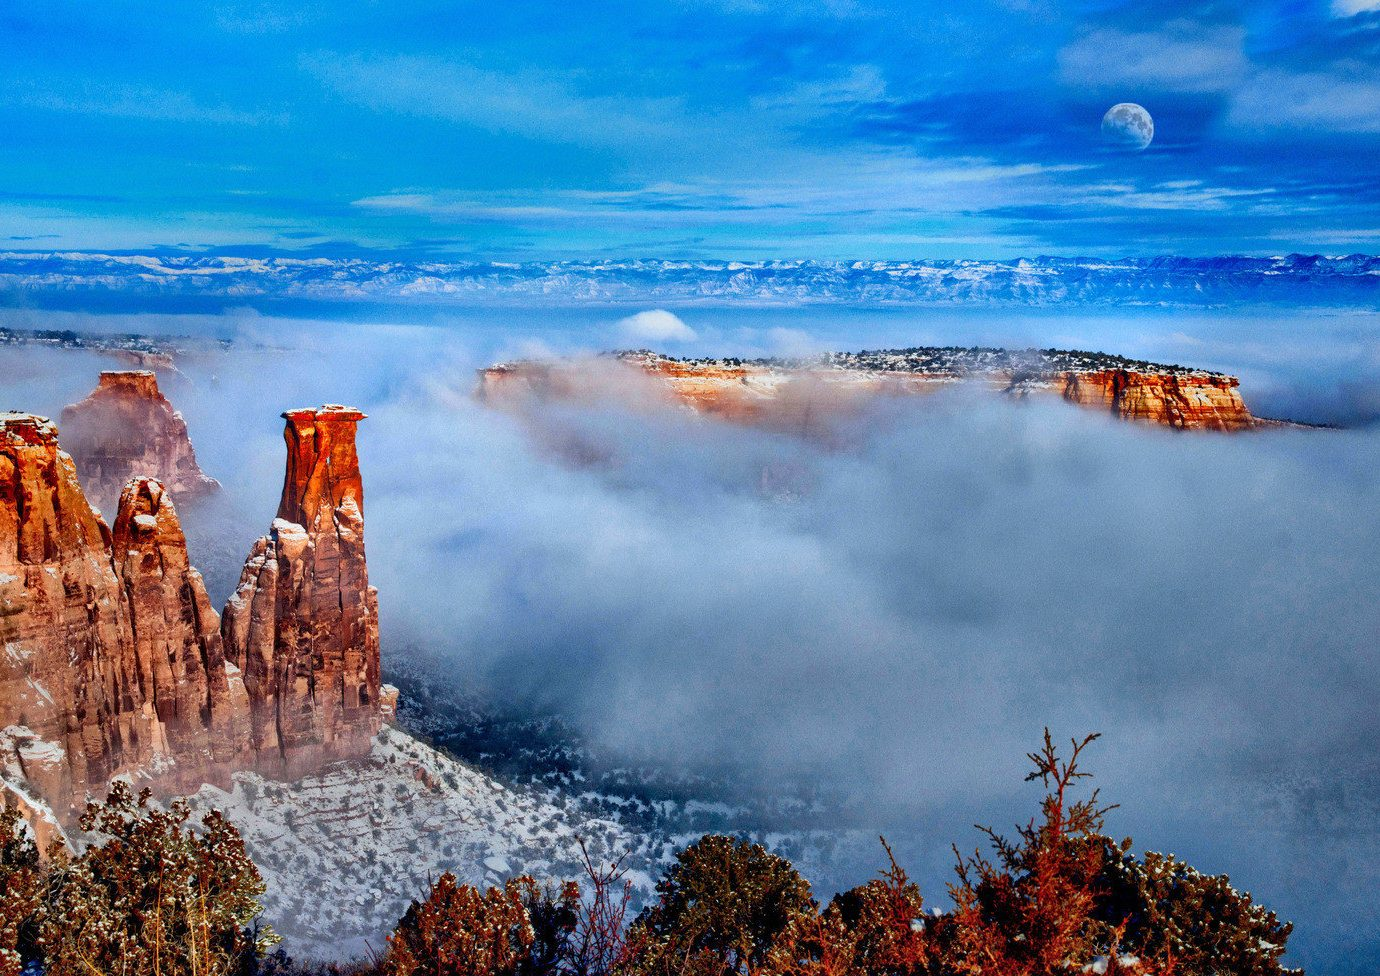 Countryside Landmarks national park Natural wonders Nature Offbeat Scenic views western sky outdoor geological phenomenon canyon cloud reflection morning landscape mountain Coast Sea dusk dawn clouds colored